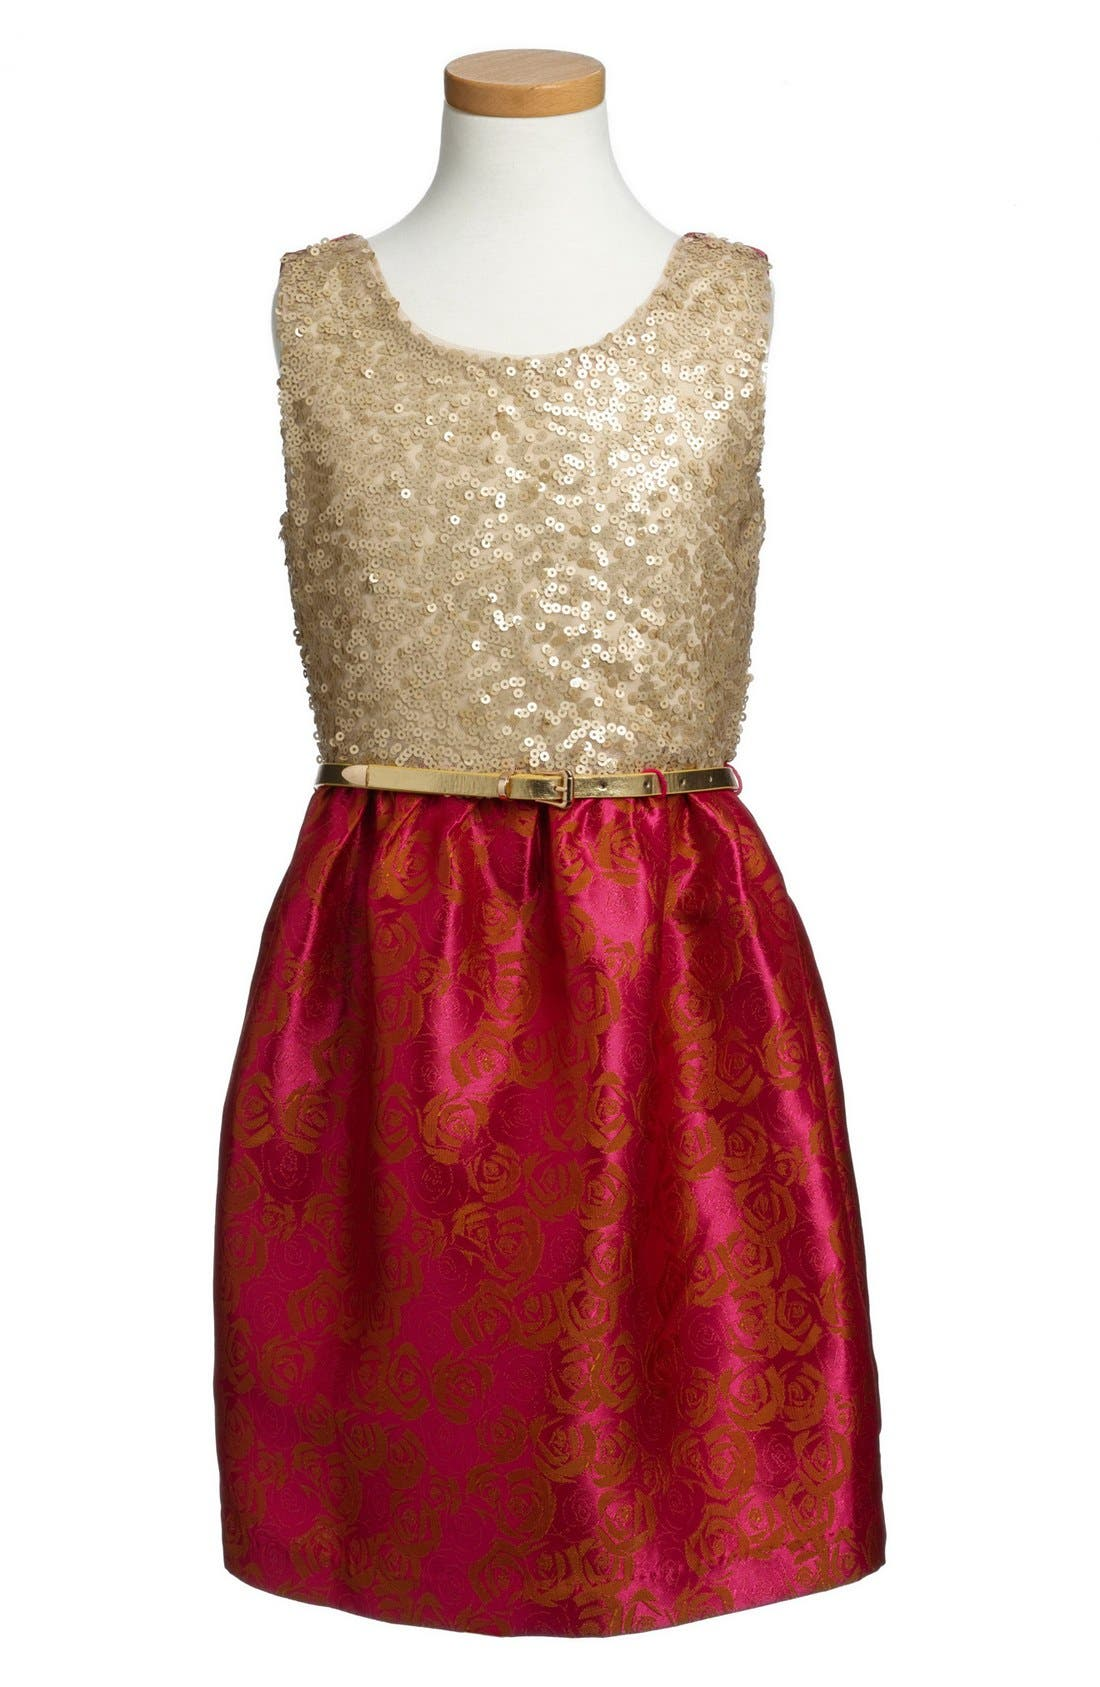 Alternate Image 1 Selected - BLUSH by Us Angels Sequin & Brocade Dress (Big Girls)